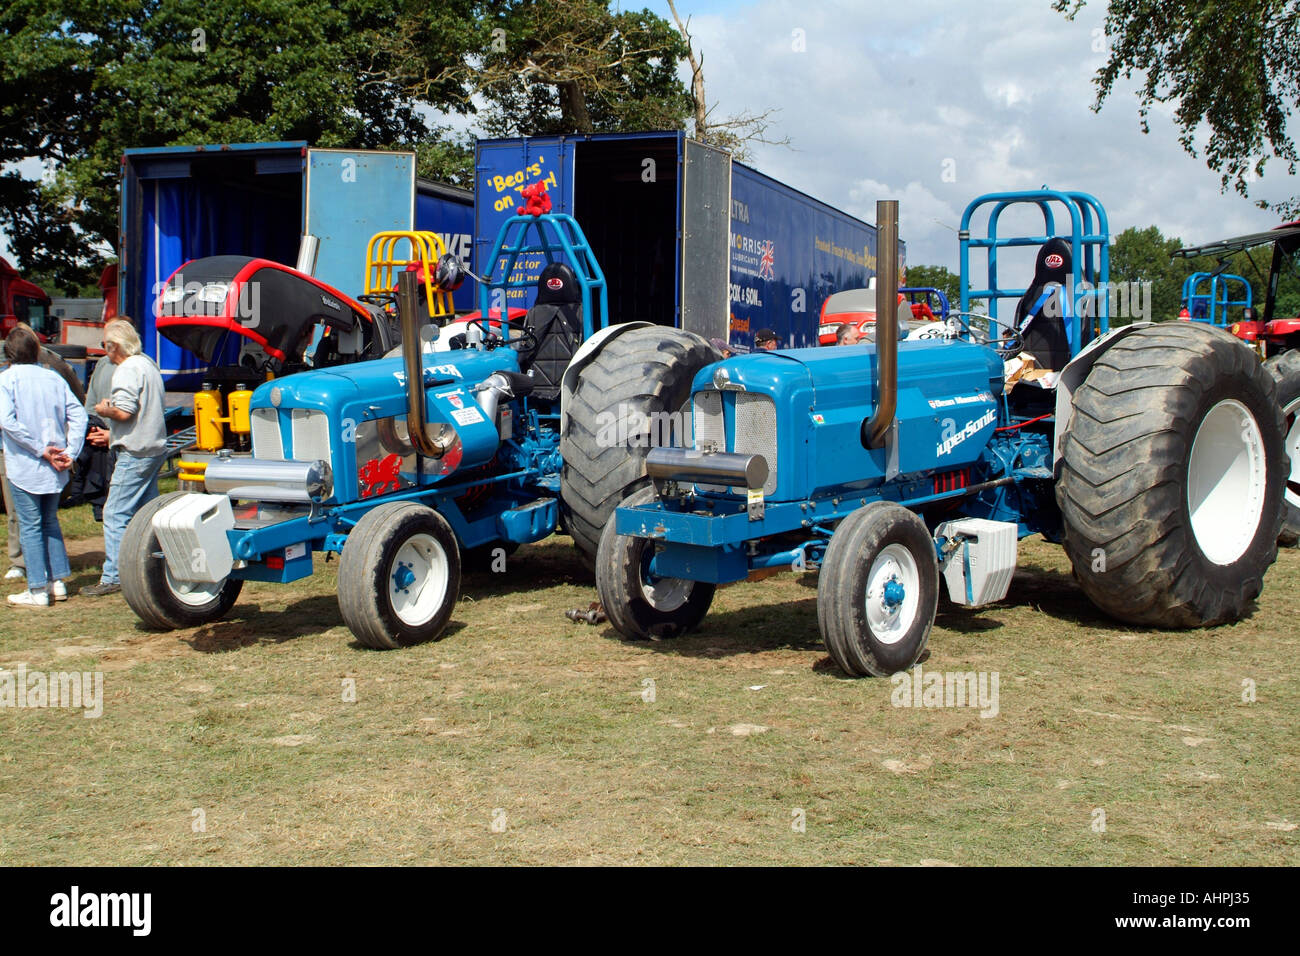 Originally Just A Farm Tractor Now A Suped Up Racing Tractor Stock - Suped up